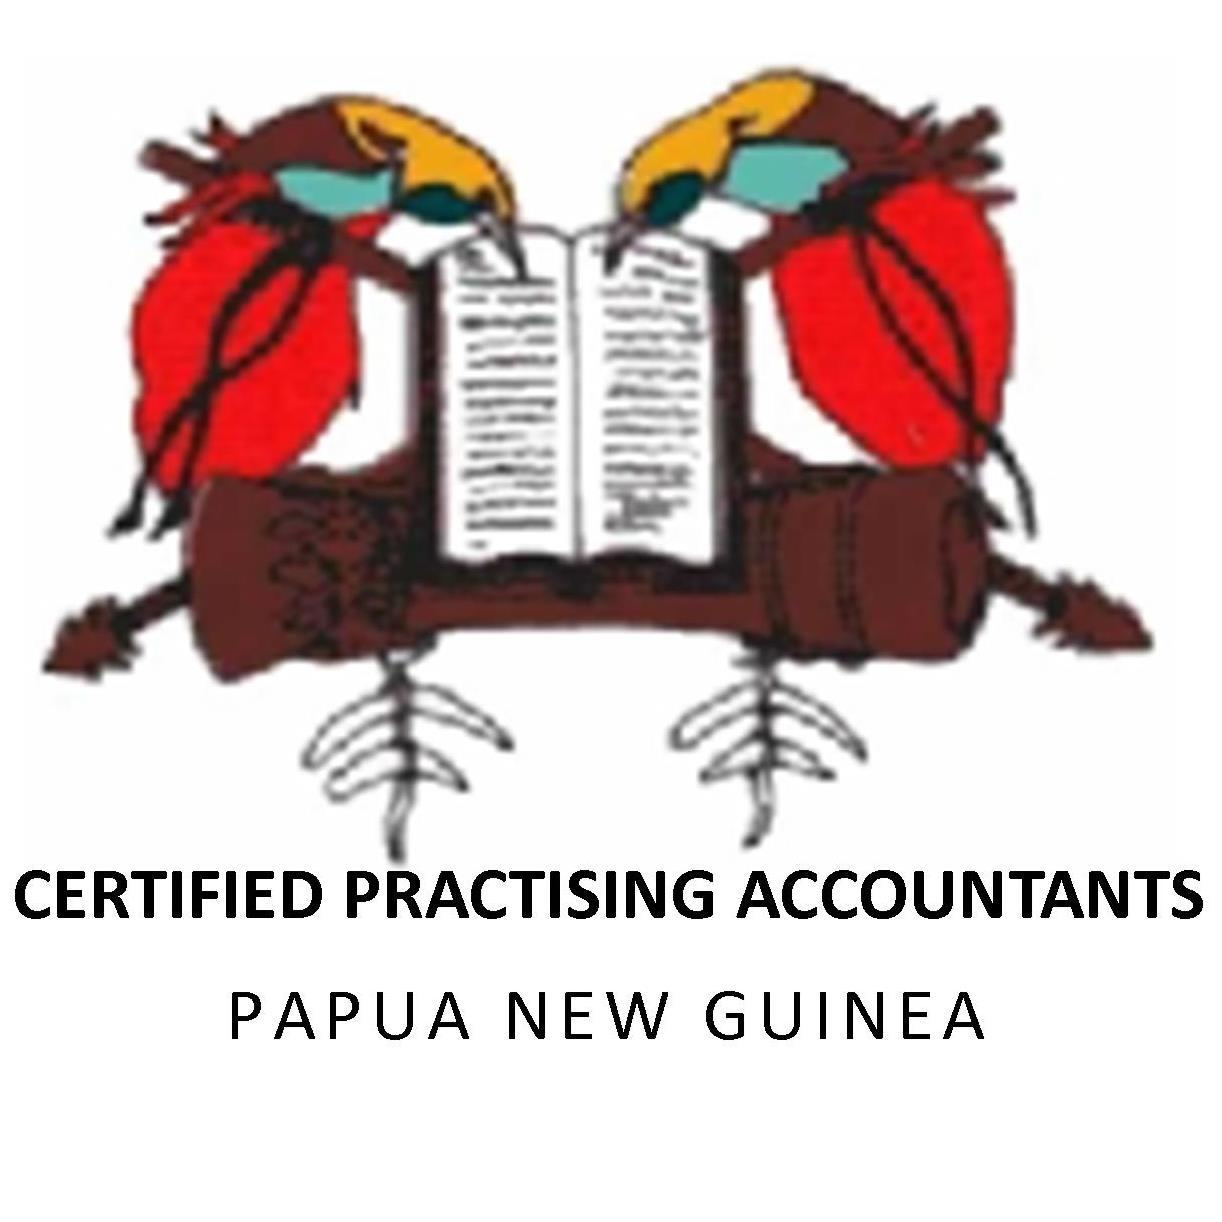 CPA Papua New Guinea (@CPAPNG).